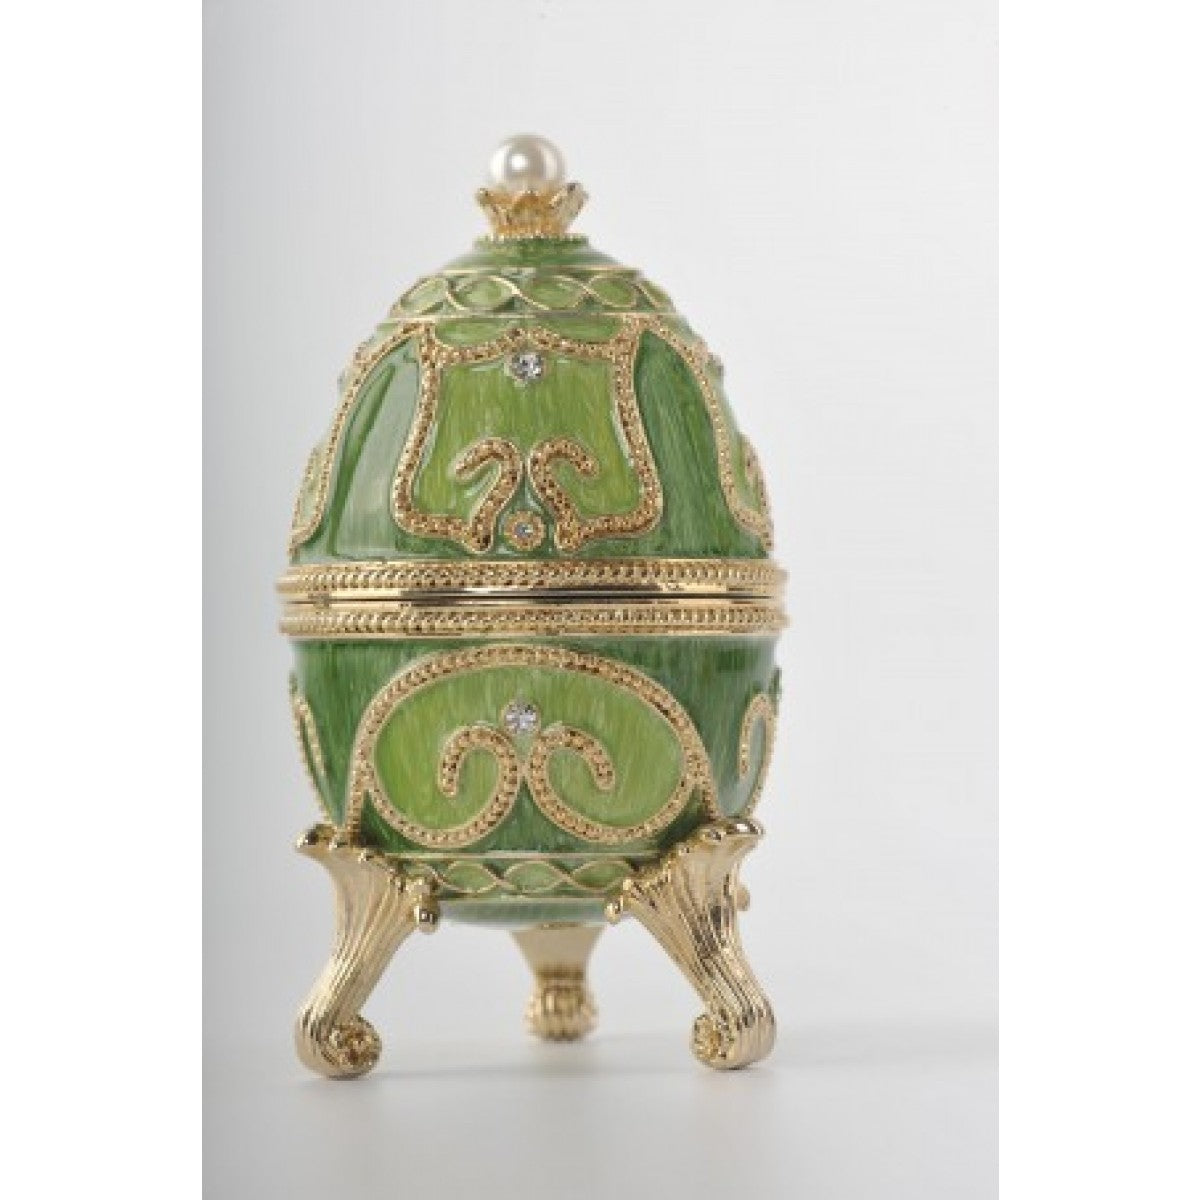 Green Faberge Egg with Animals Inside by Keren Kopal